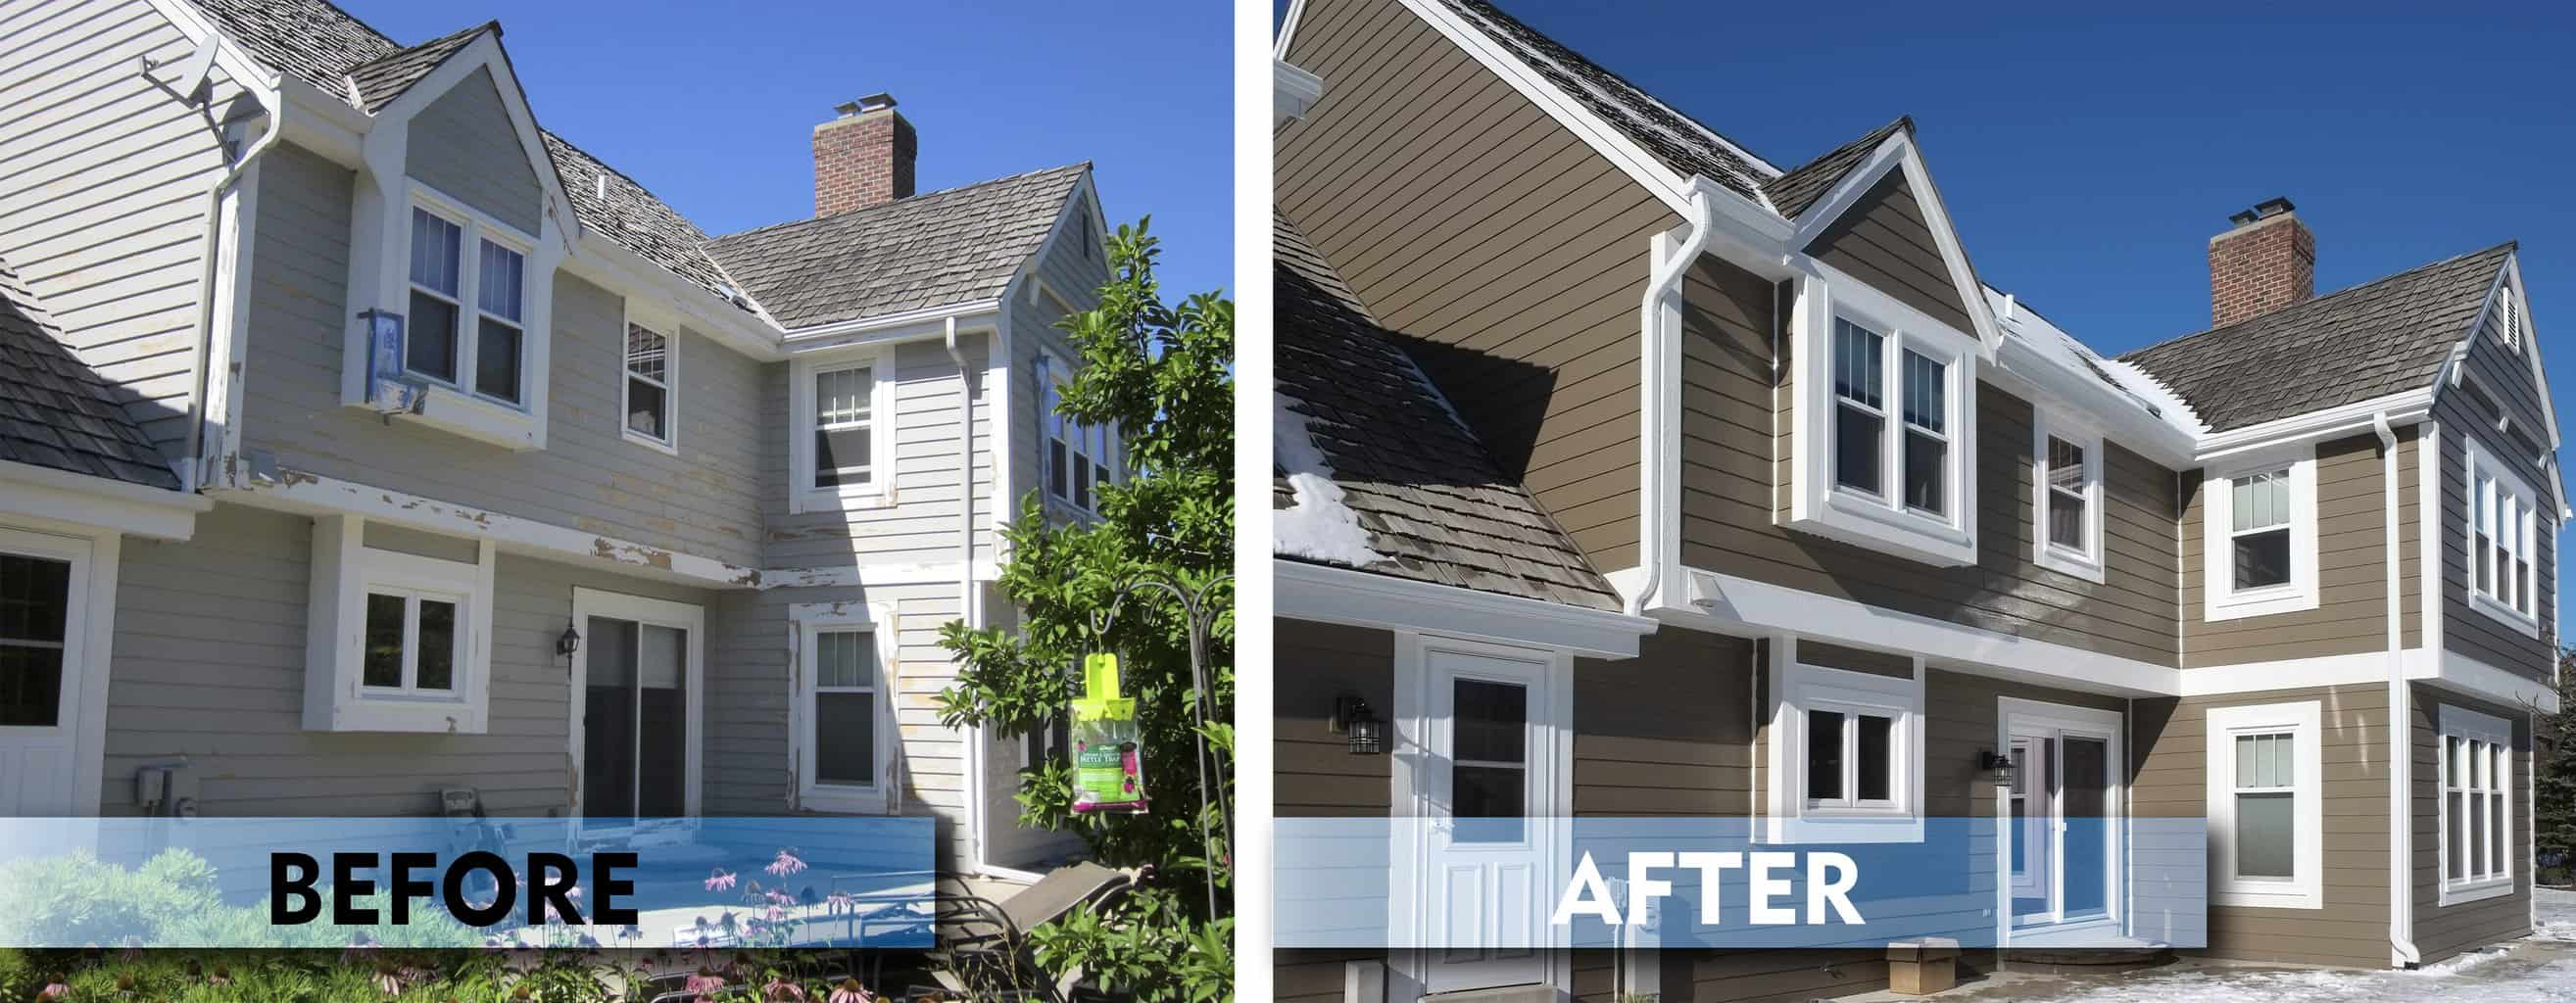 Two photos side by side, left photo is a house with worn, weathered siding. The photo on the right, is the same home after full house installation of Diamond Kote® siding.